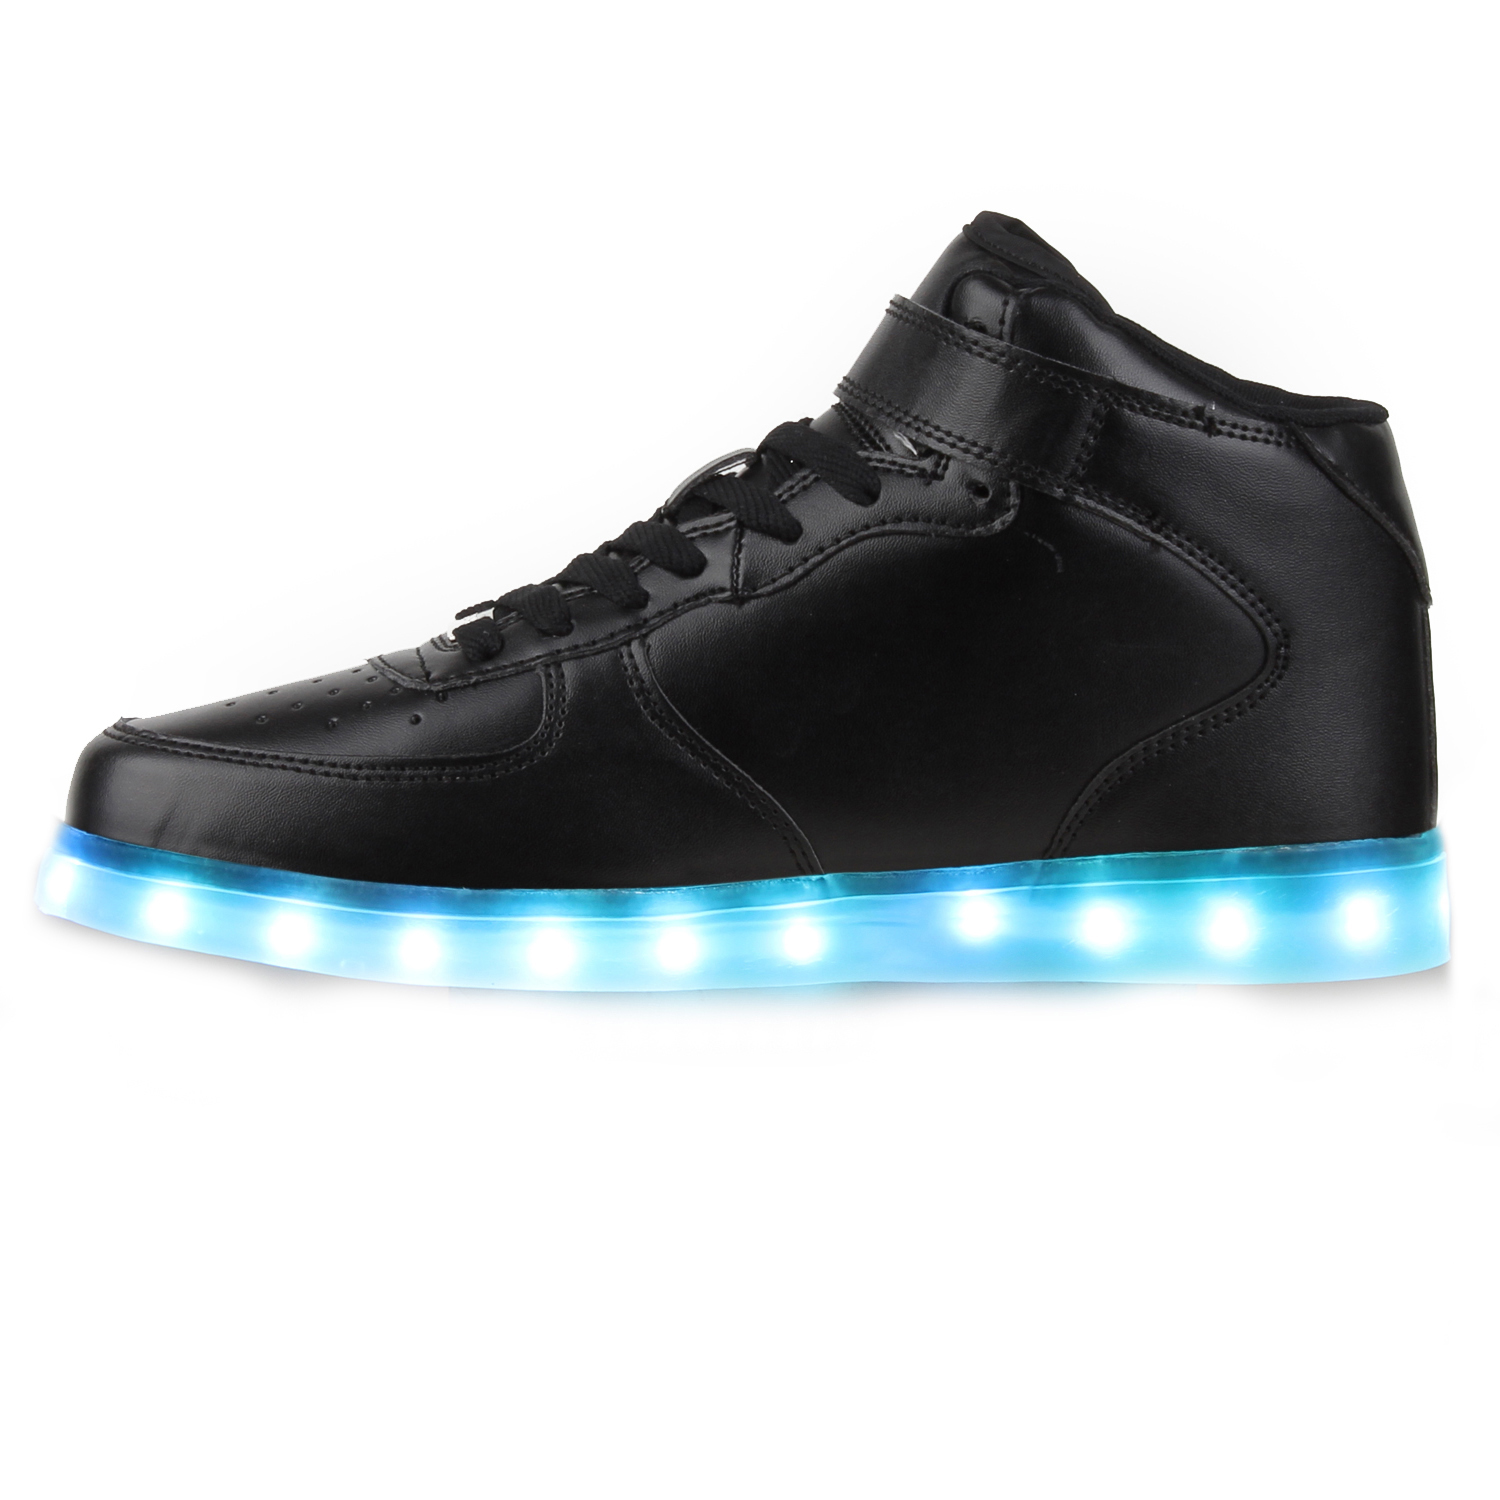 blinkende herren sneakers high led light farbwechsel 78314 led licht schuhe ebay. Black Bedroom Furniture Sets. Home Design Ideas